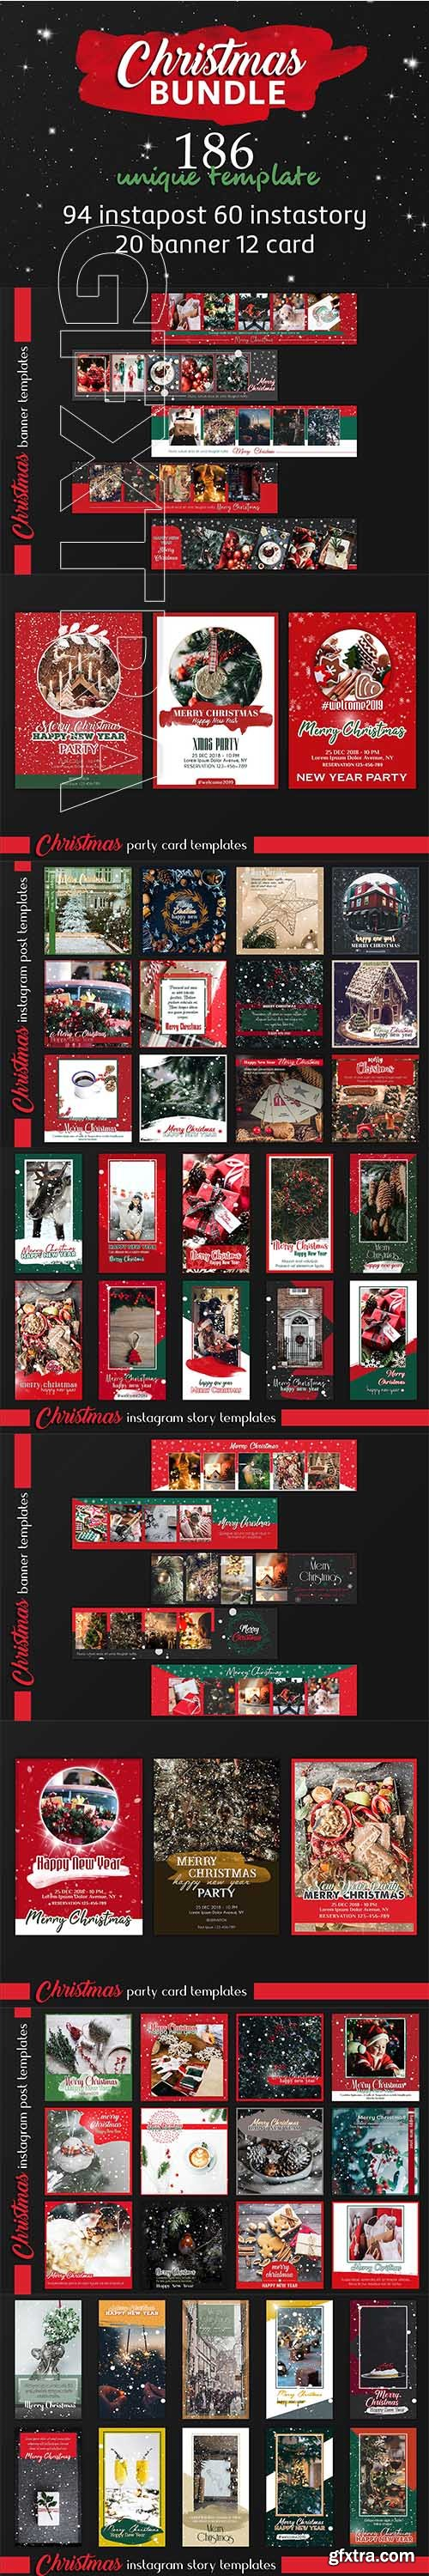 CreativeMarket - Christmas Instagram & Card Bundle 3213068